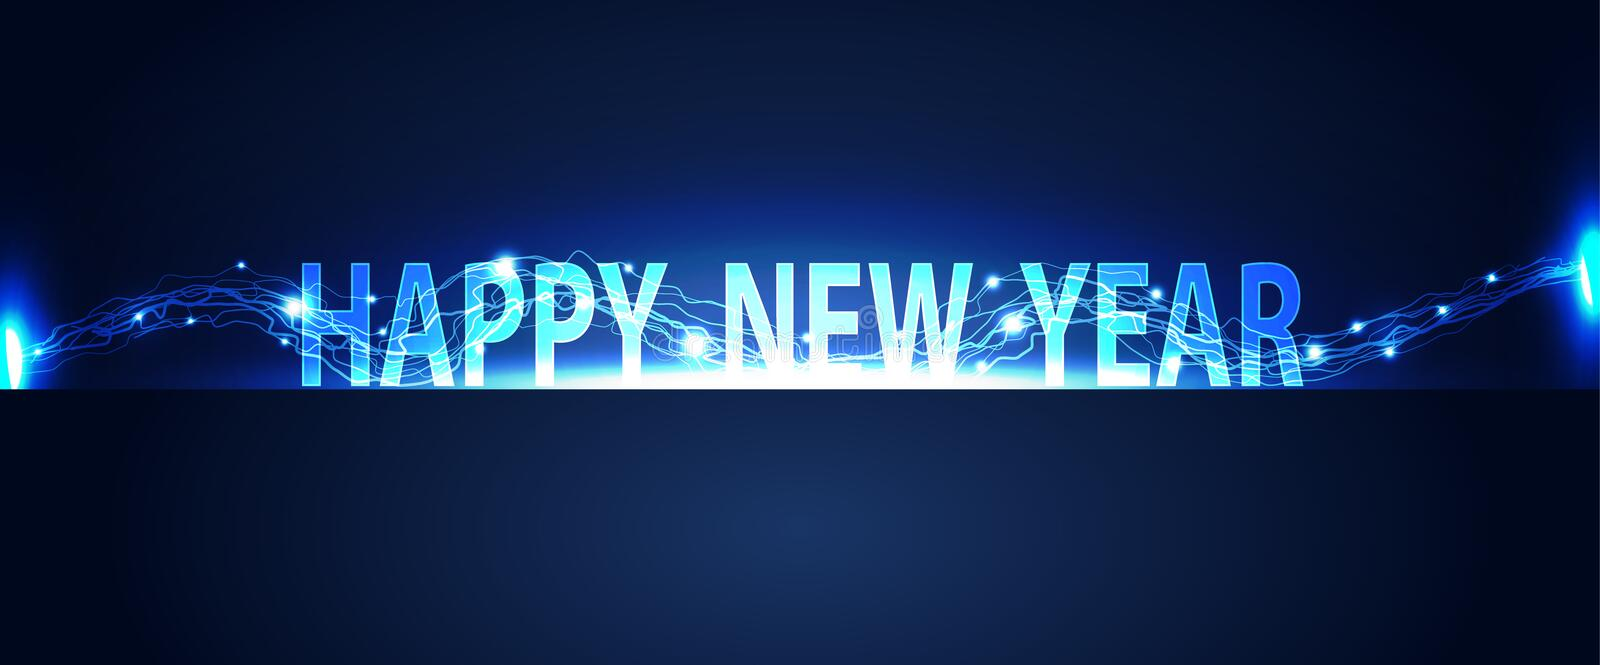 Happy new year technology concept background royalty free illustration